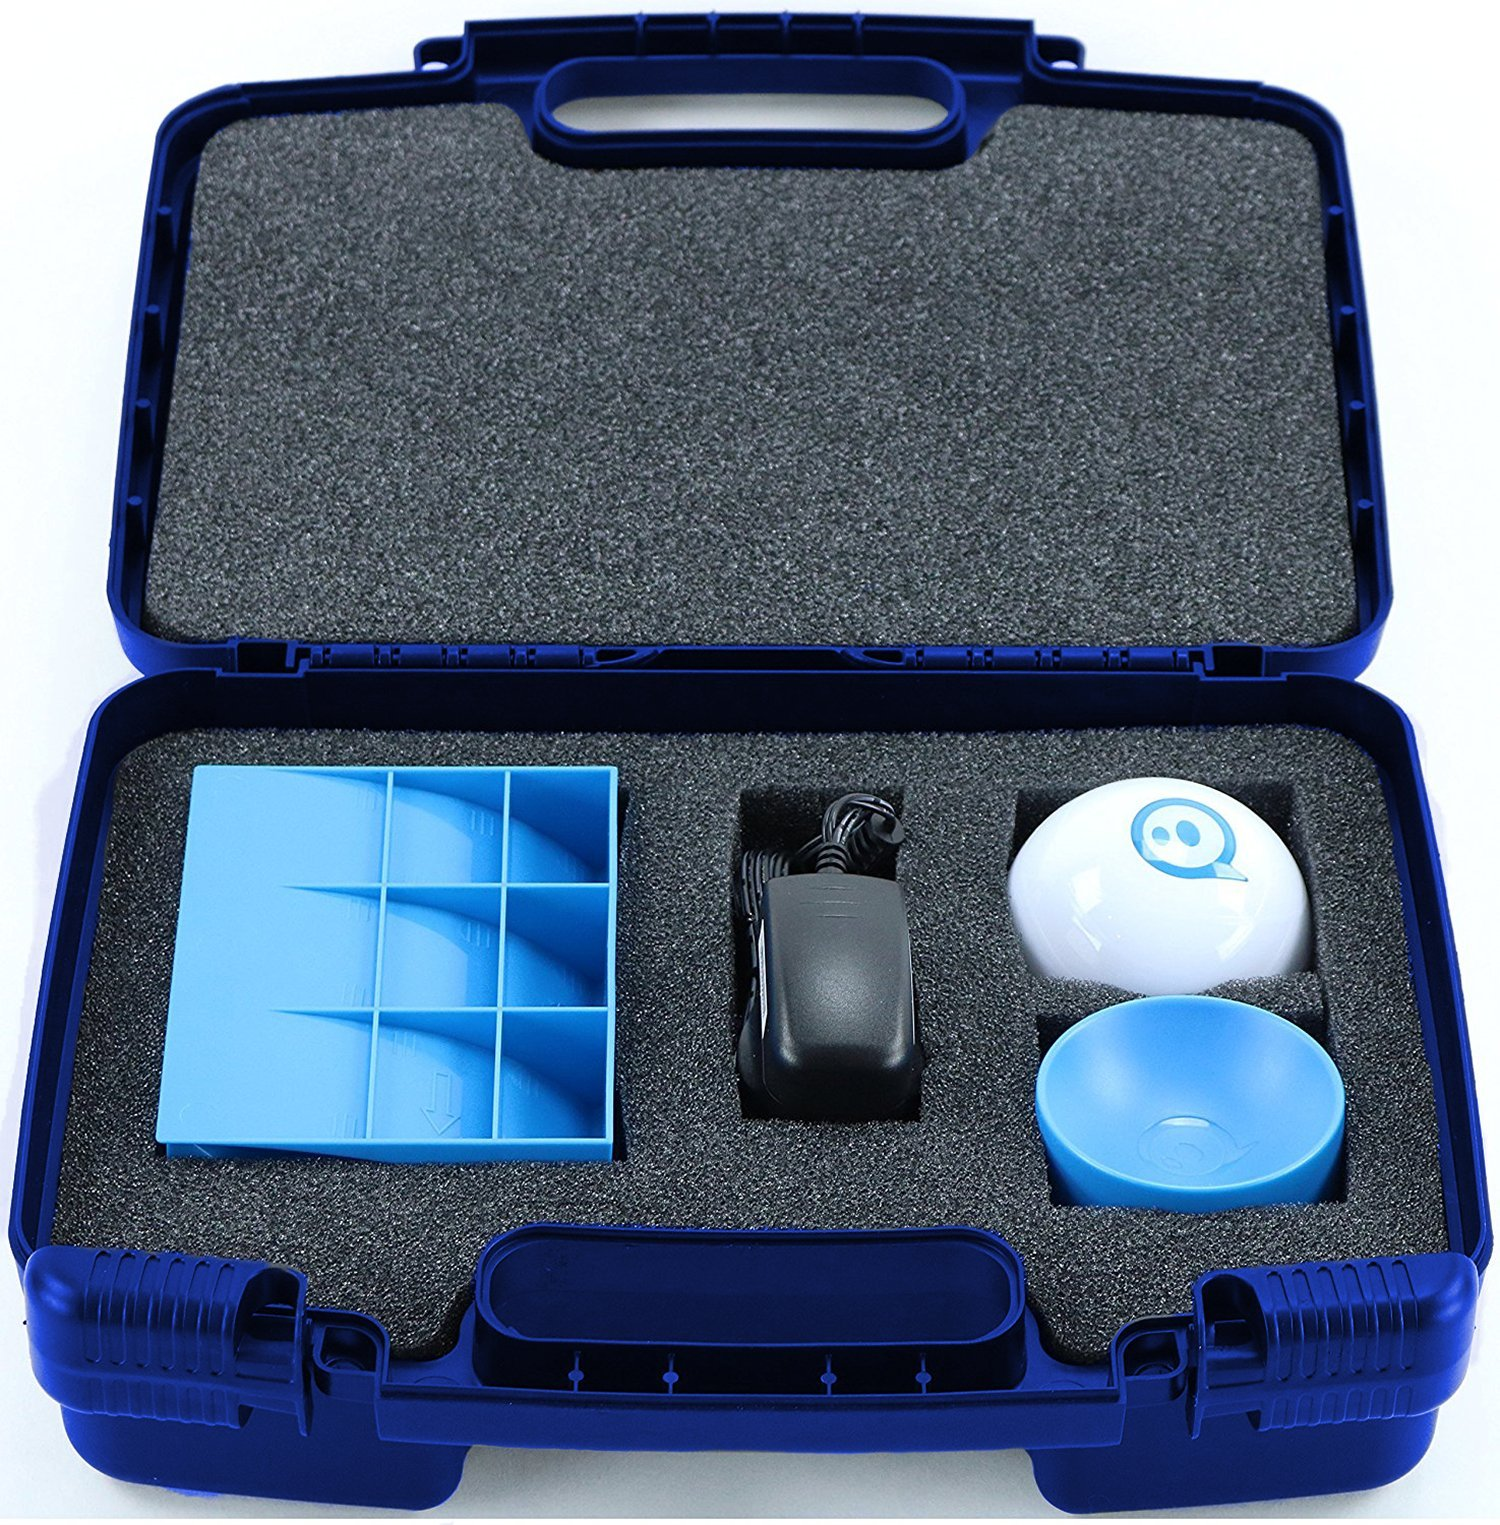 Life Made Better Storage Organizer - Compatible with Sphero 2.0 The App-Controlled Robot Ball and Accessories- Durable Carrying Case - Blue